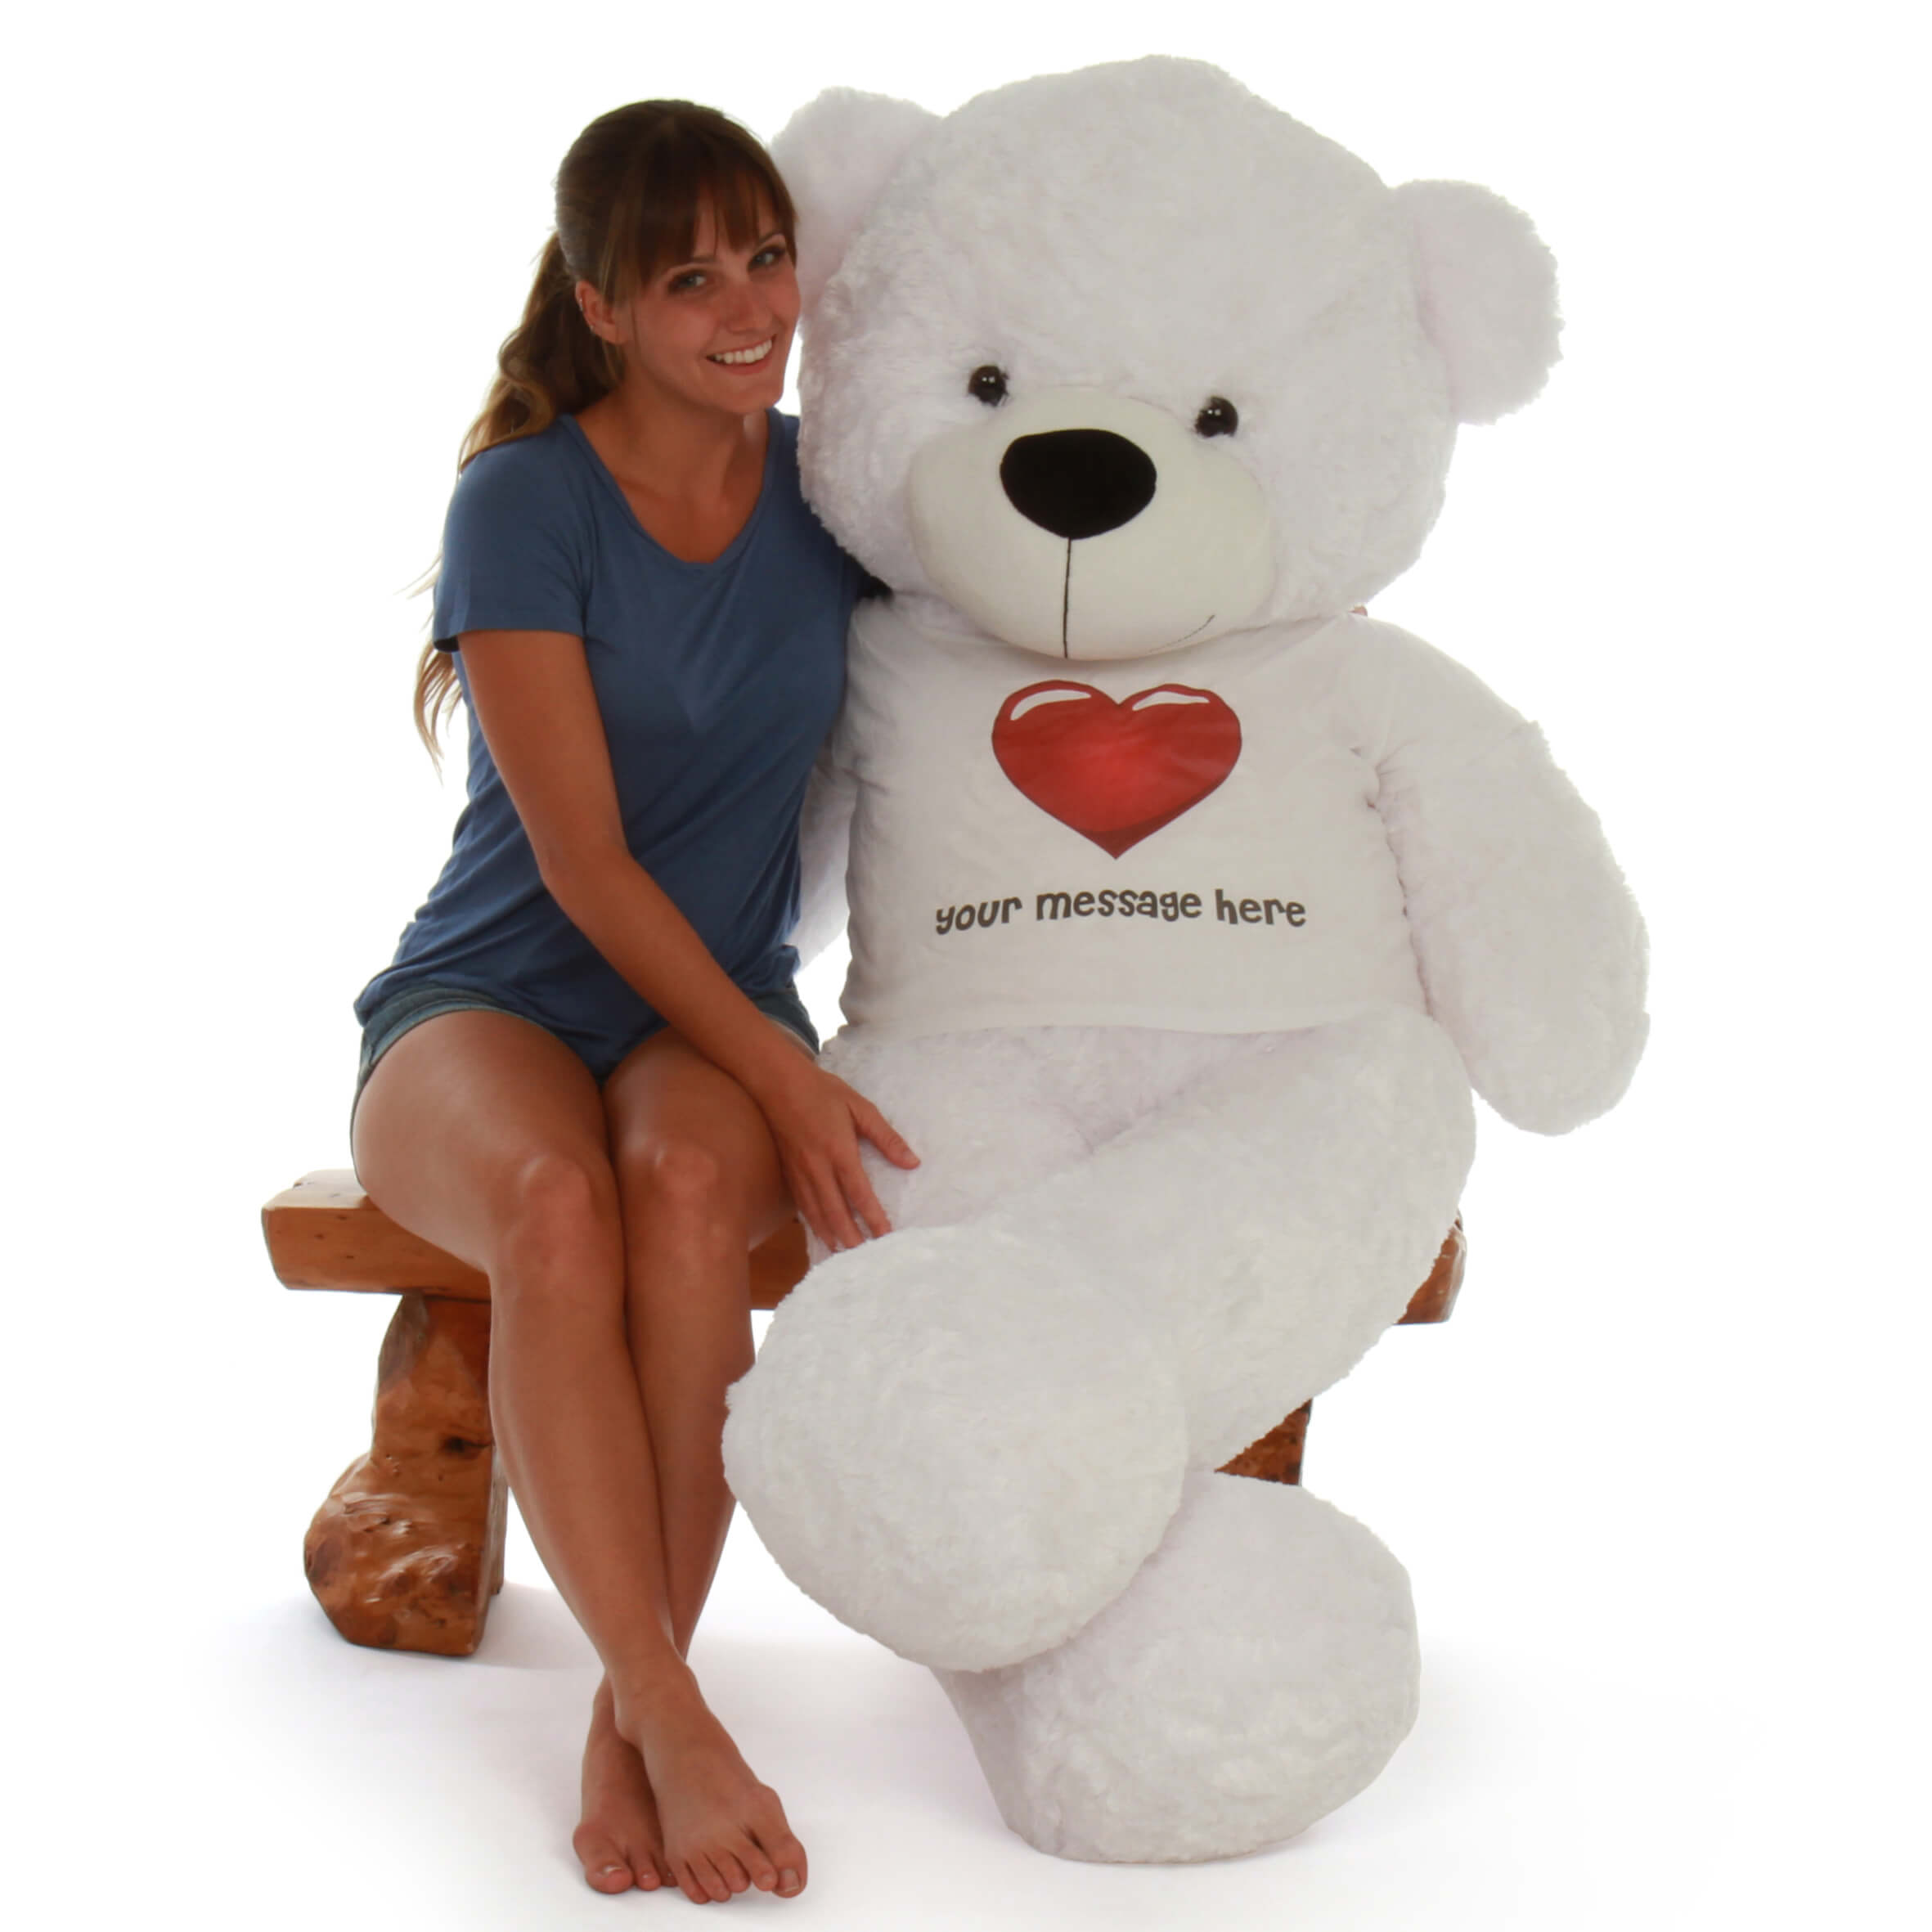 5ft-life-size-personalized-white-teddy-bear-coco-cuddles-in-red-heart-shirt-1.jpg